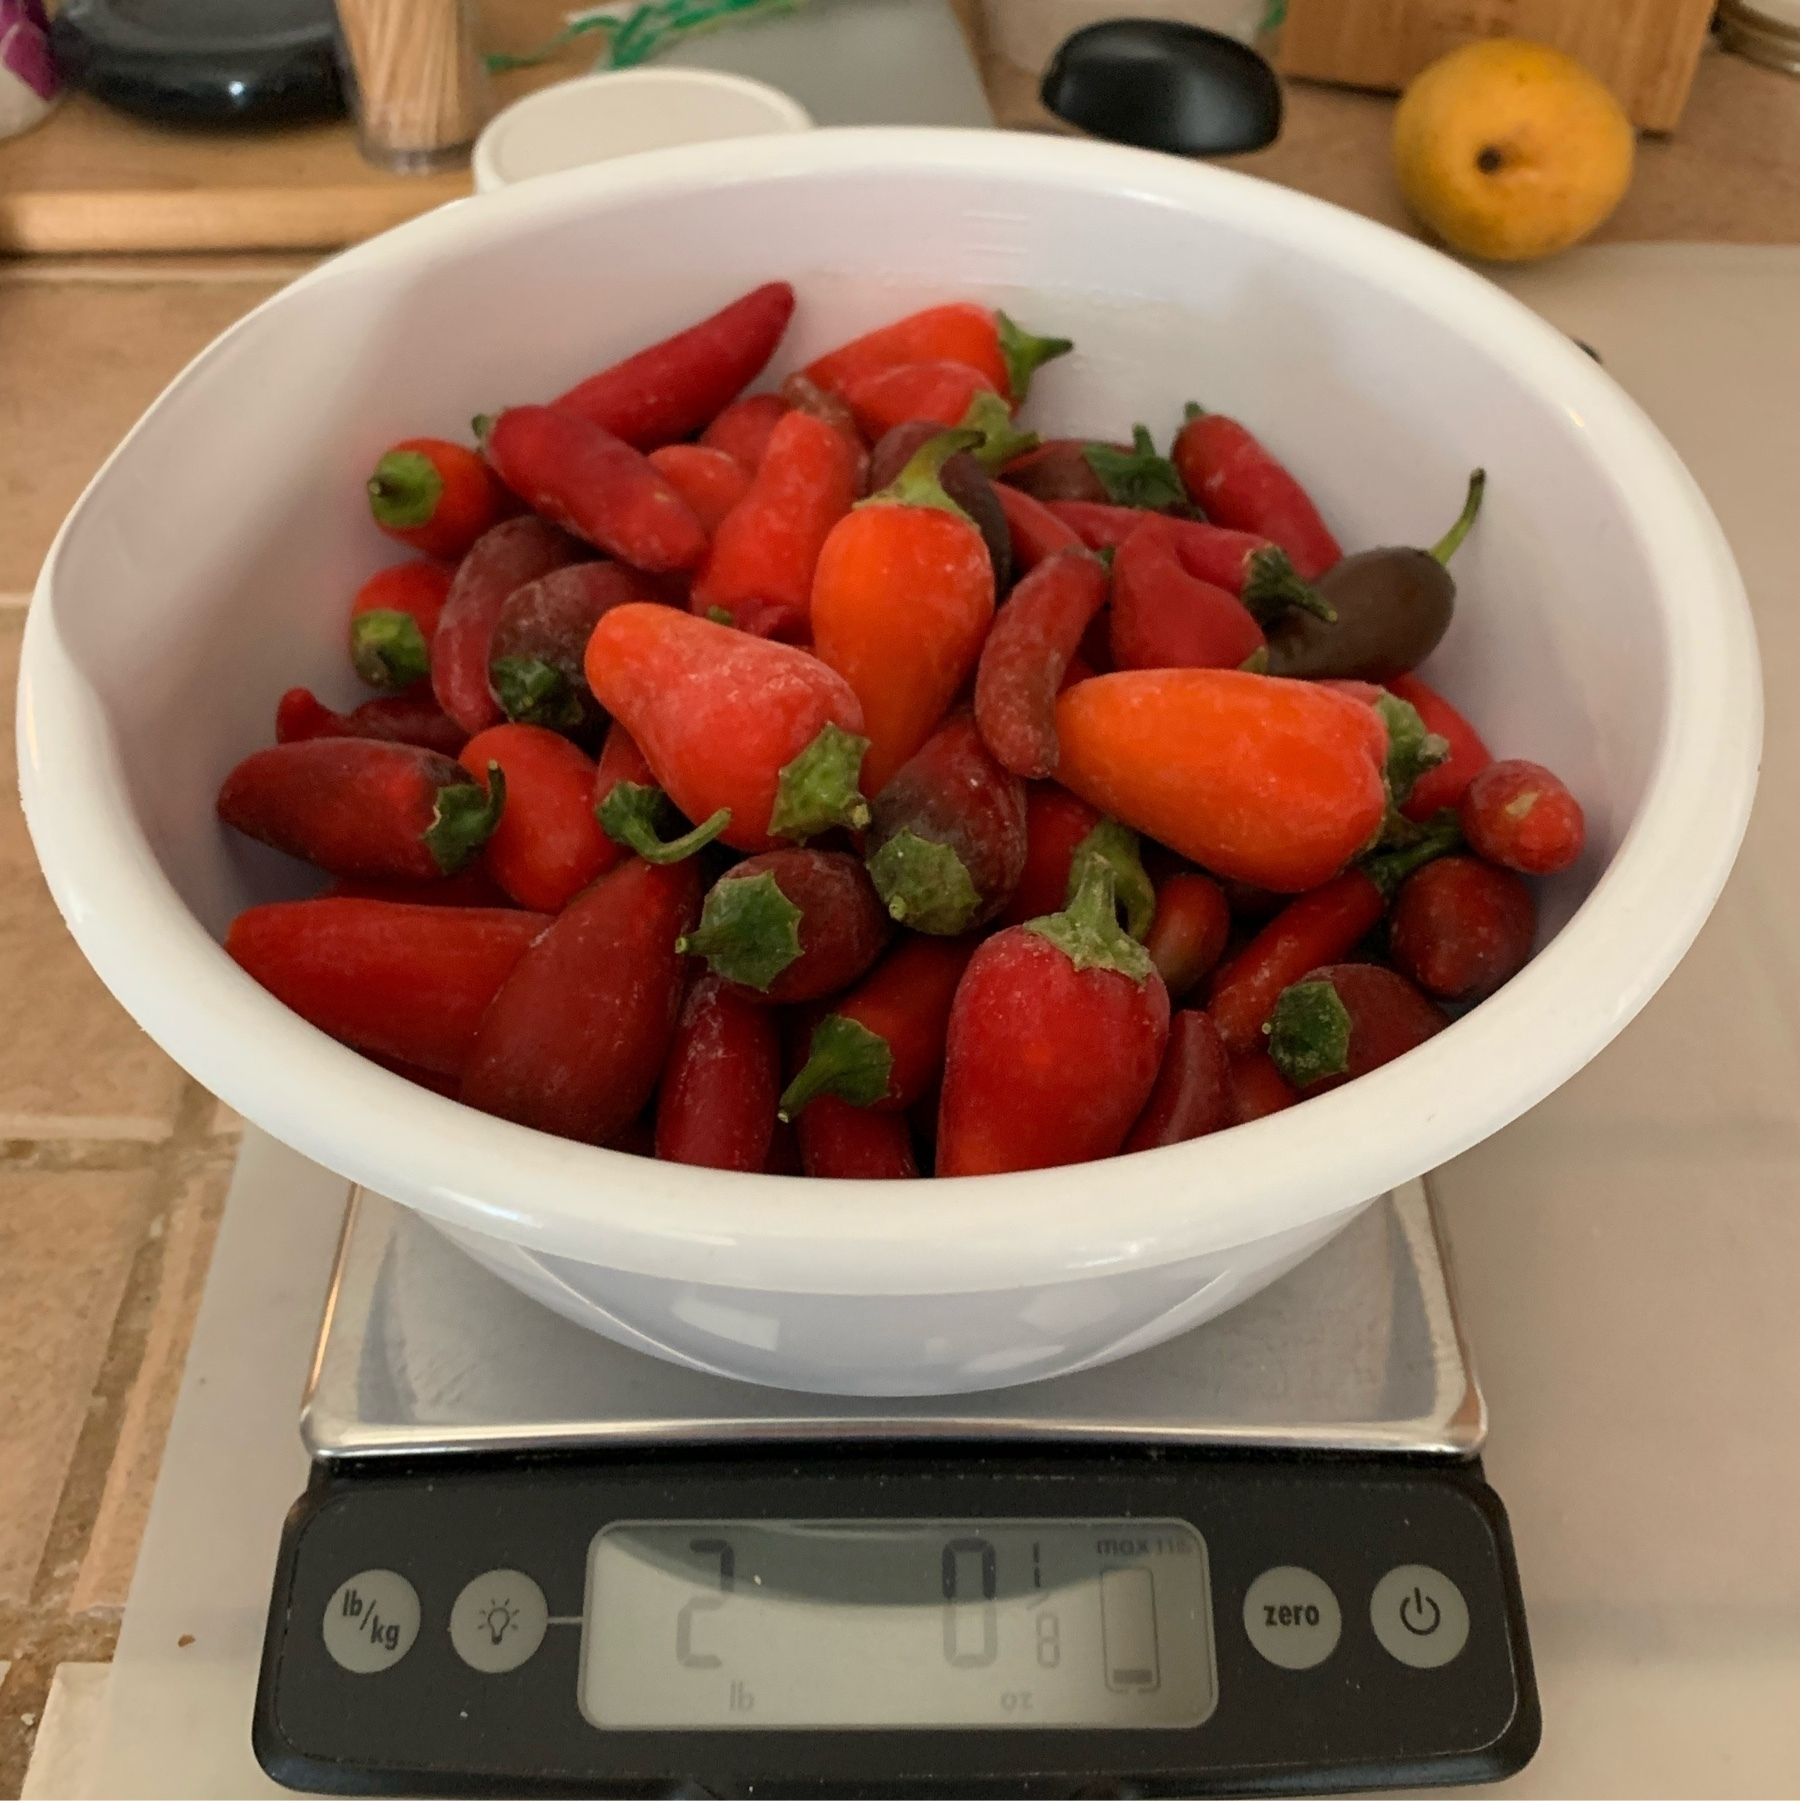 weighed peppers